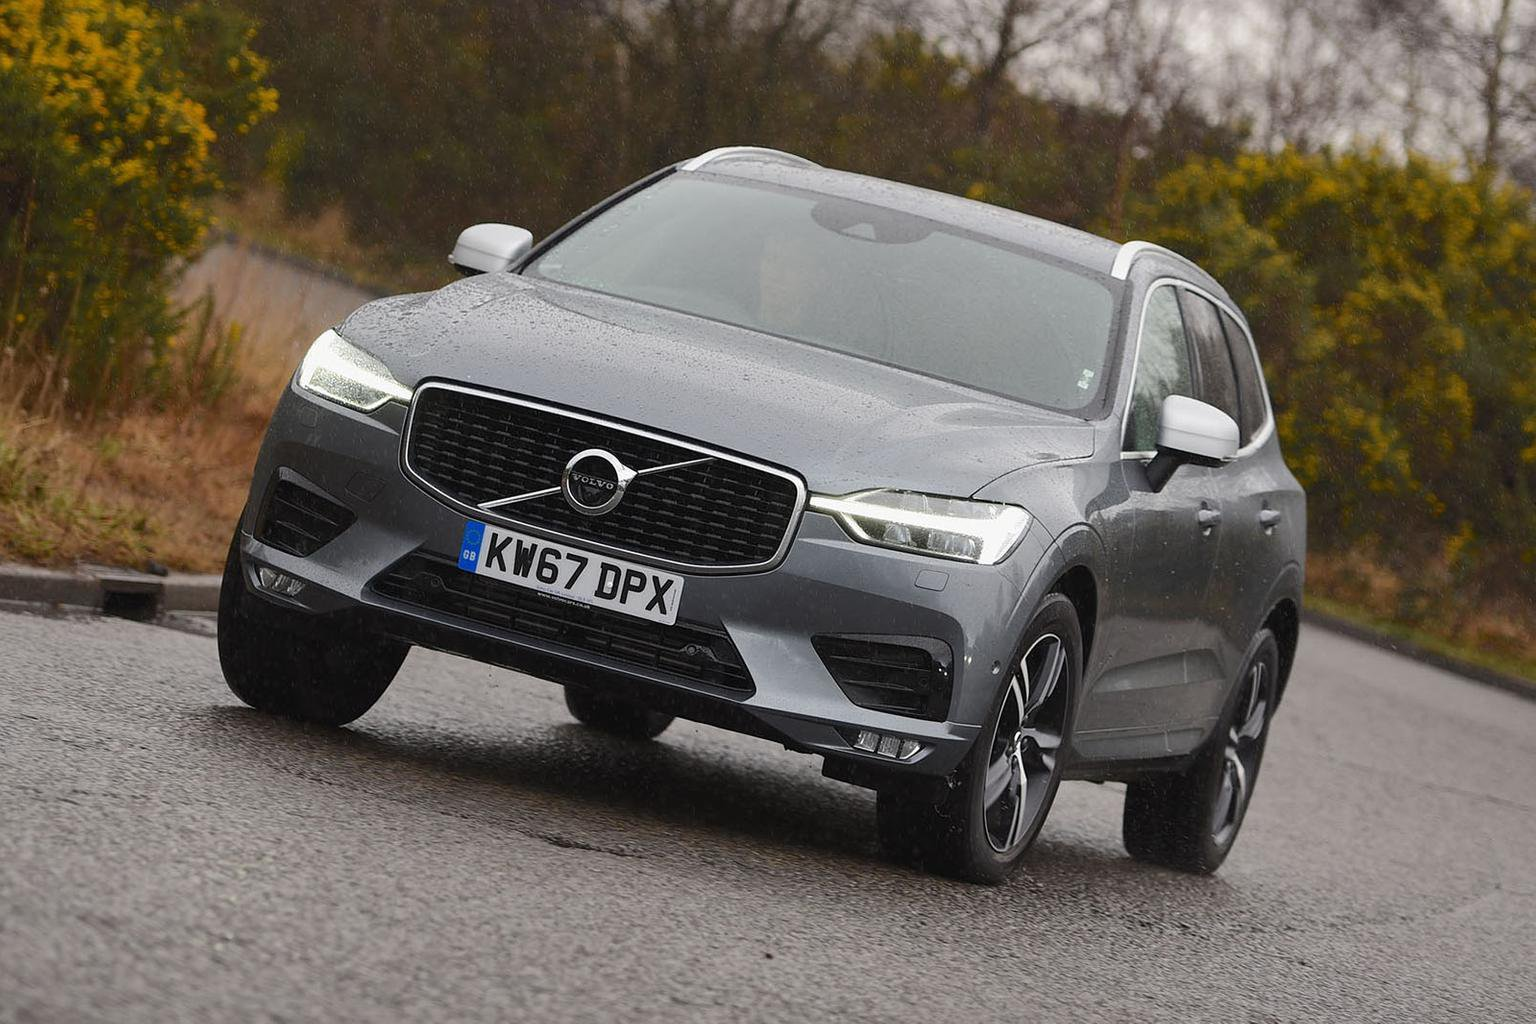 2018 Volvo Xc60 D4 Manual Review Price Specs And Release Date